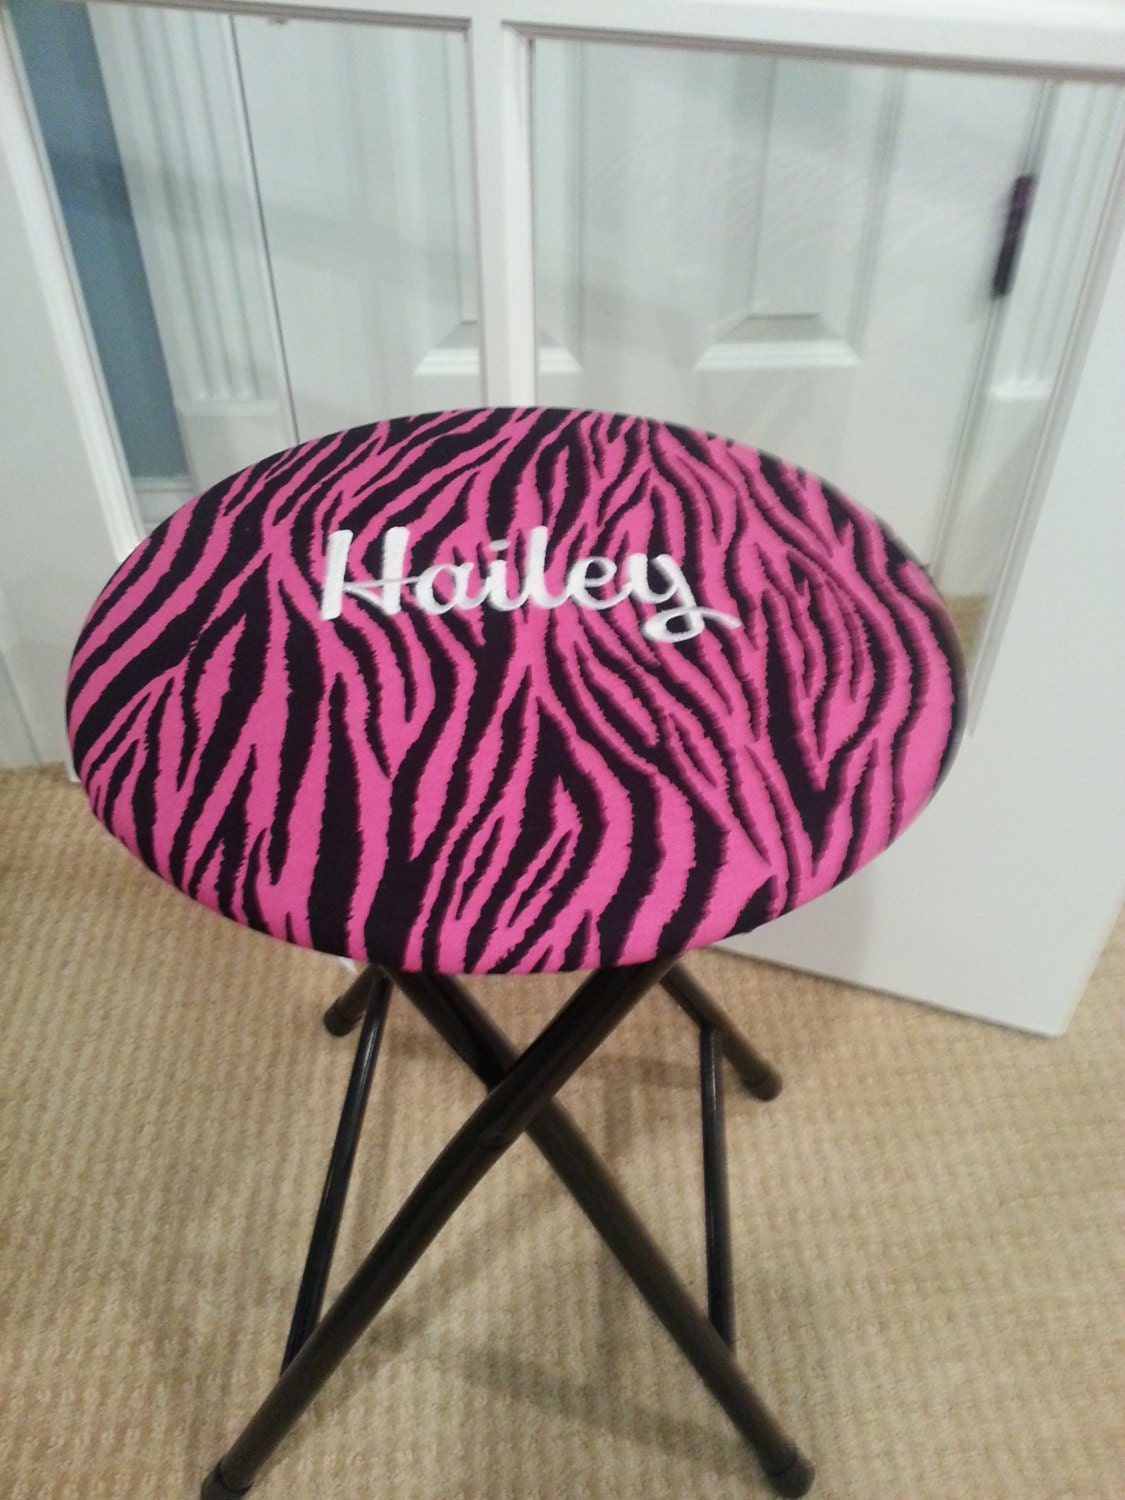 Personalized Stool Cover